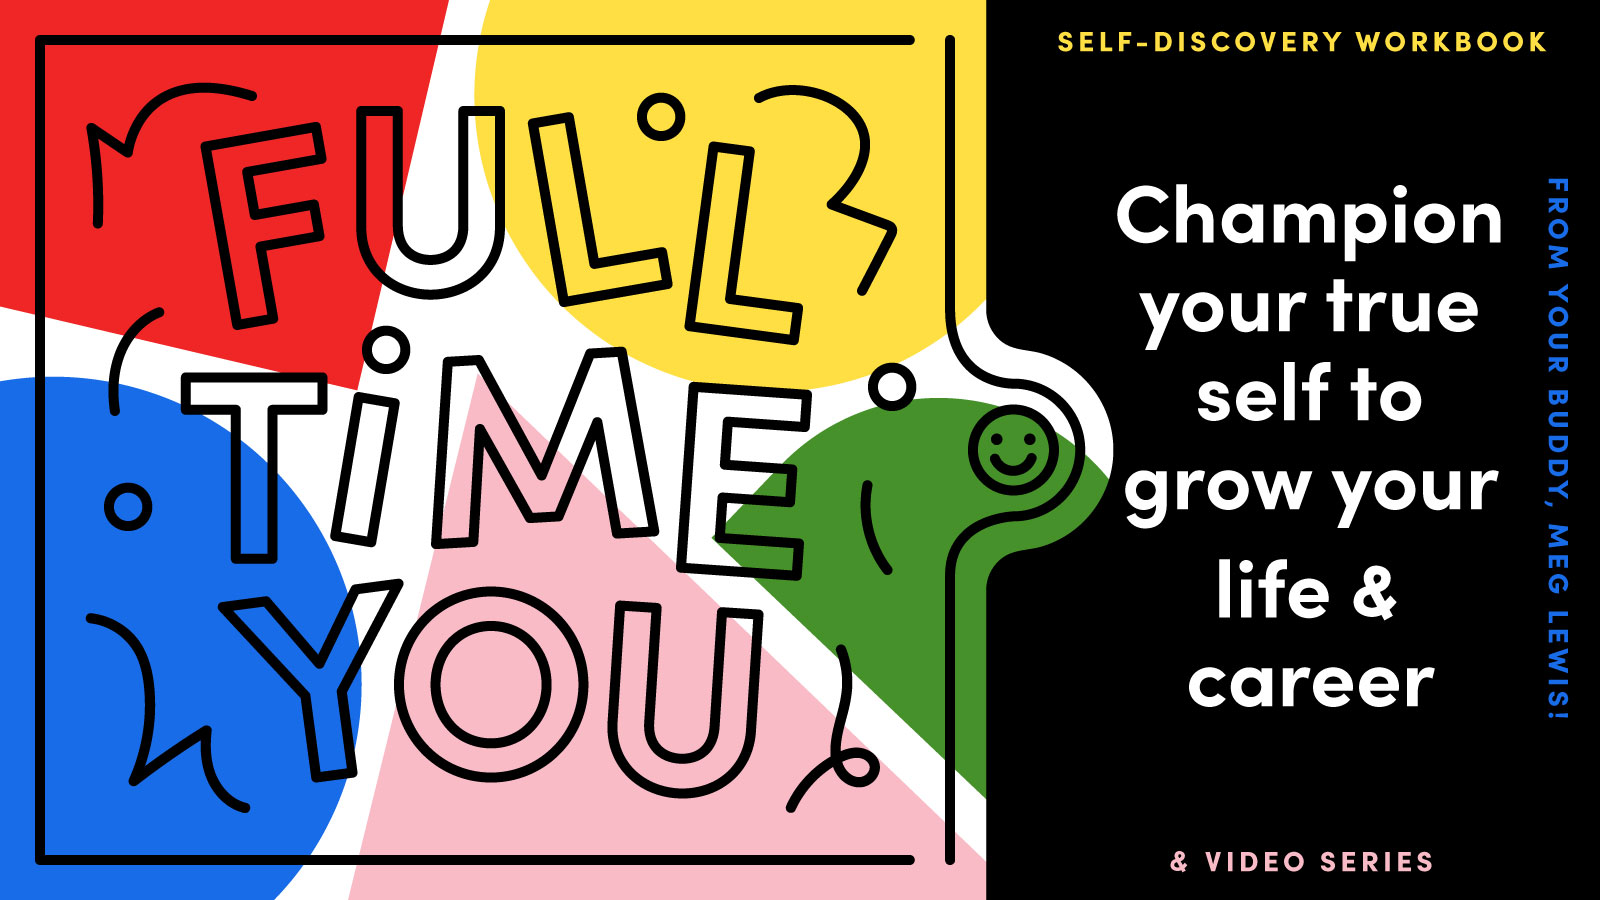 Full Time You - Champion your true self to grow your life and career.Agency: FreelanceClient: Darn Good/Meg LewisArt Director: Meg Lewis